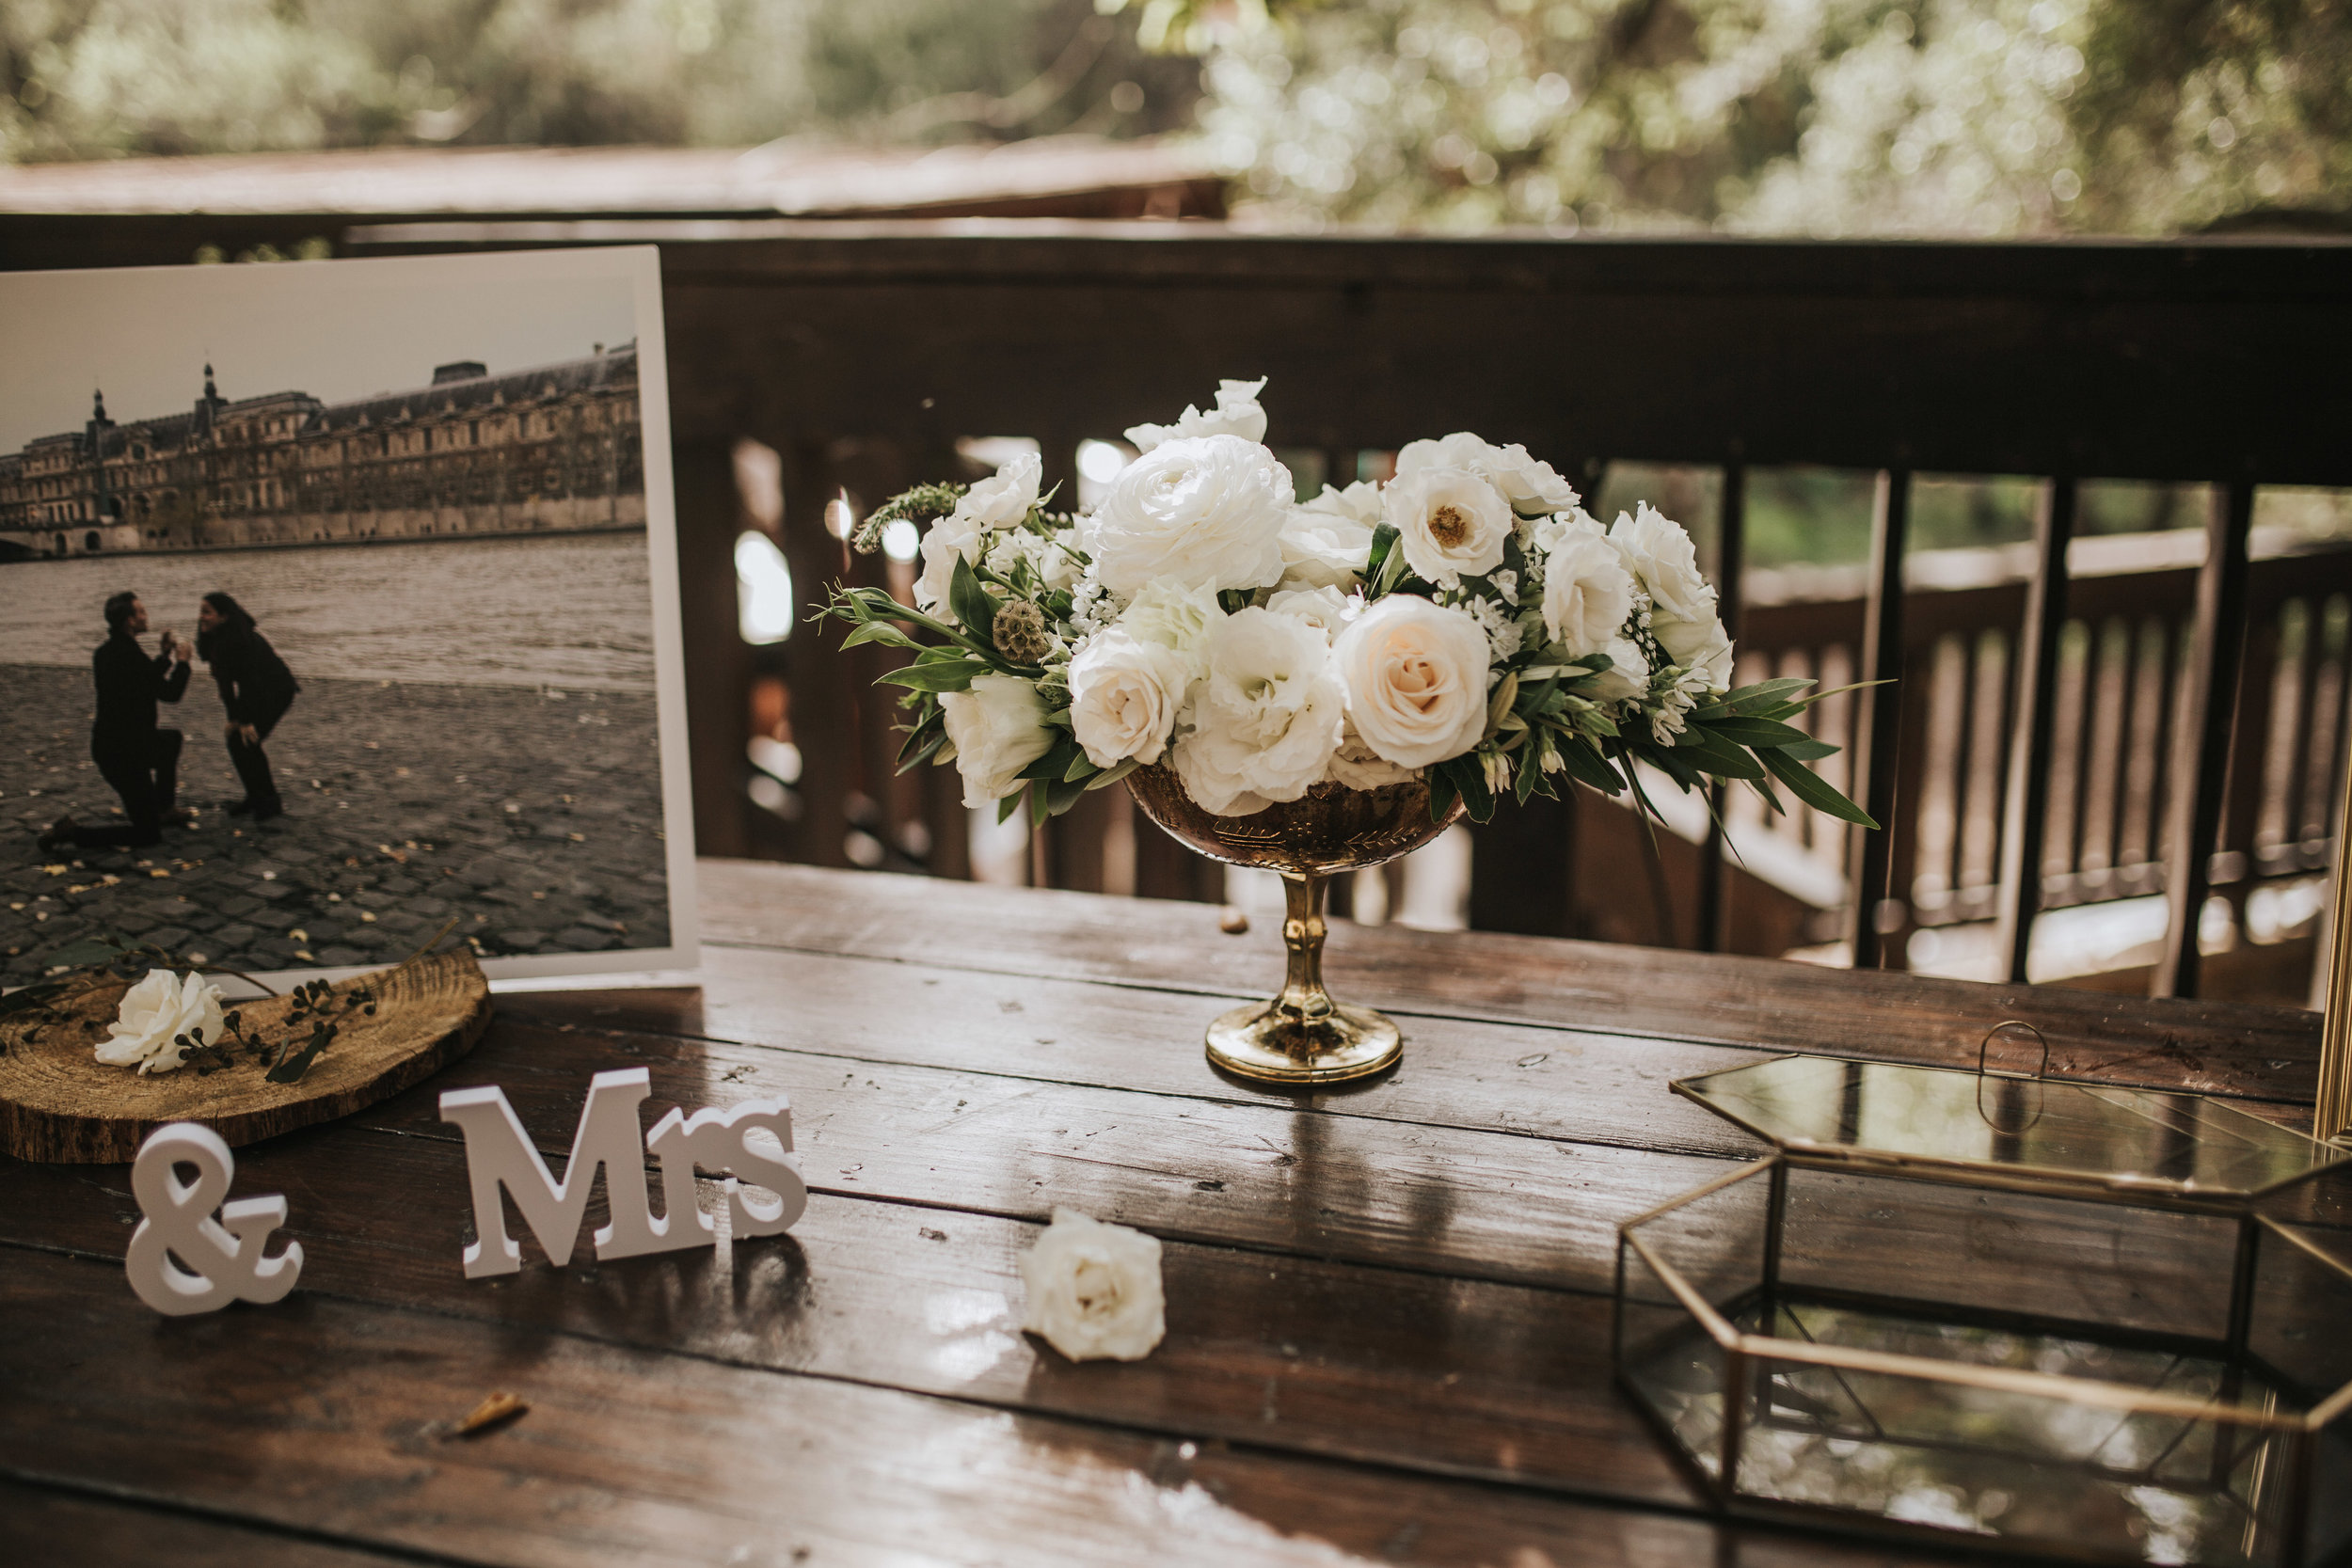 The 1909, The 1909 Wedding, Topanga Canyon Wedding, white peony bridal bouquet, eucalyptus bridal bouquet, white spray rose bouquet, welcome table arrangement, gold minimalist floral arrangement